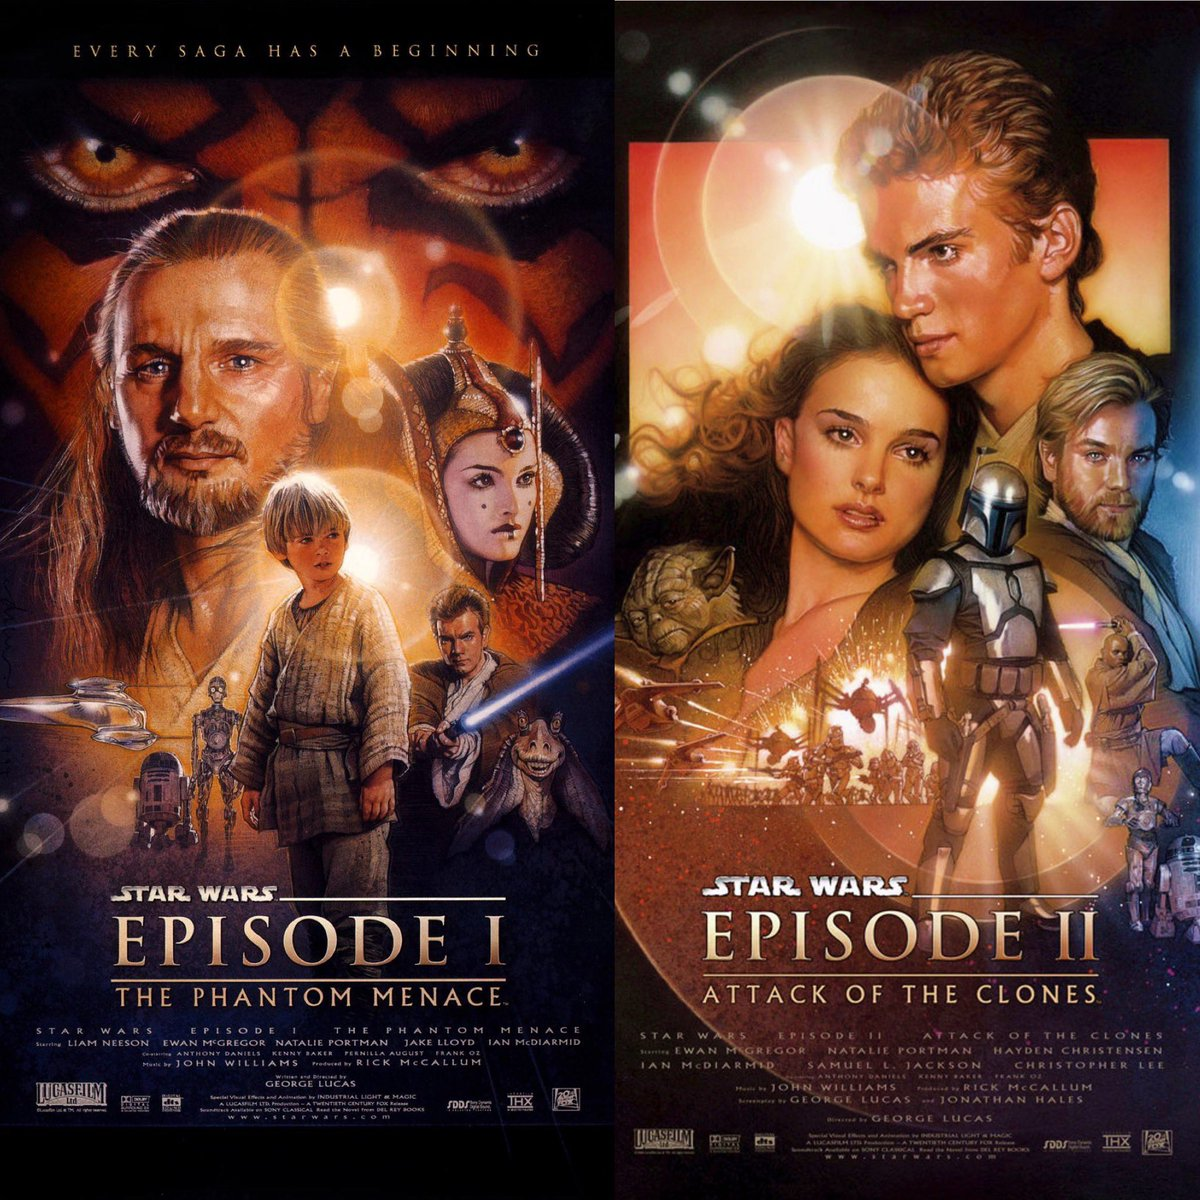 I would love to see stories set between TPM & AOTC in the future, there is so many great potential stories there. I want the canon version of the creation of the Clone Army and a sequel to Dooku: Jedi Lost. #StarWars #ThePhantomMenace #AttackOfTheClones #DookuJediLost